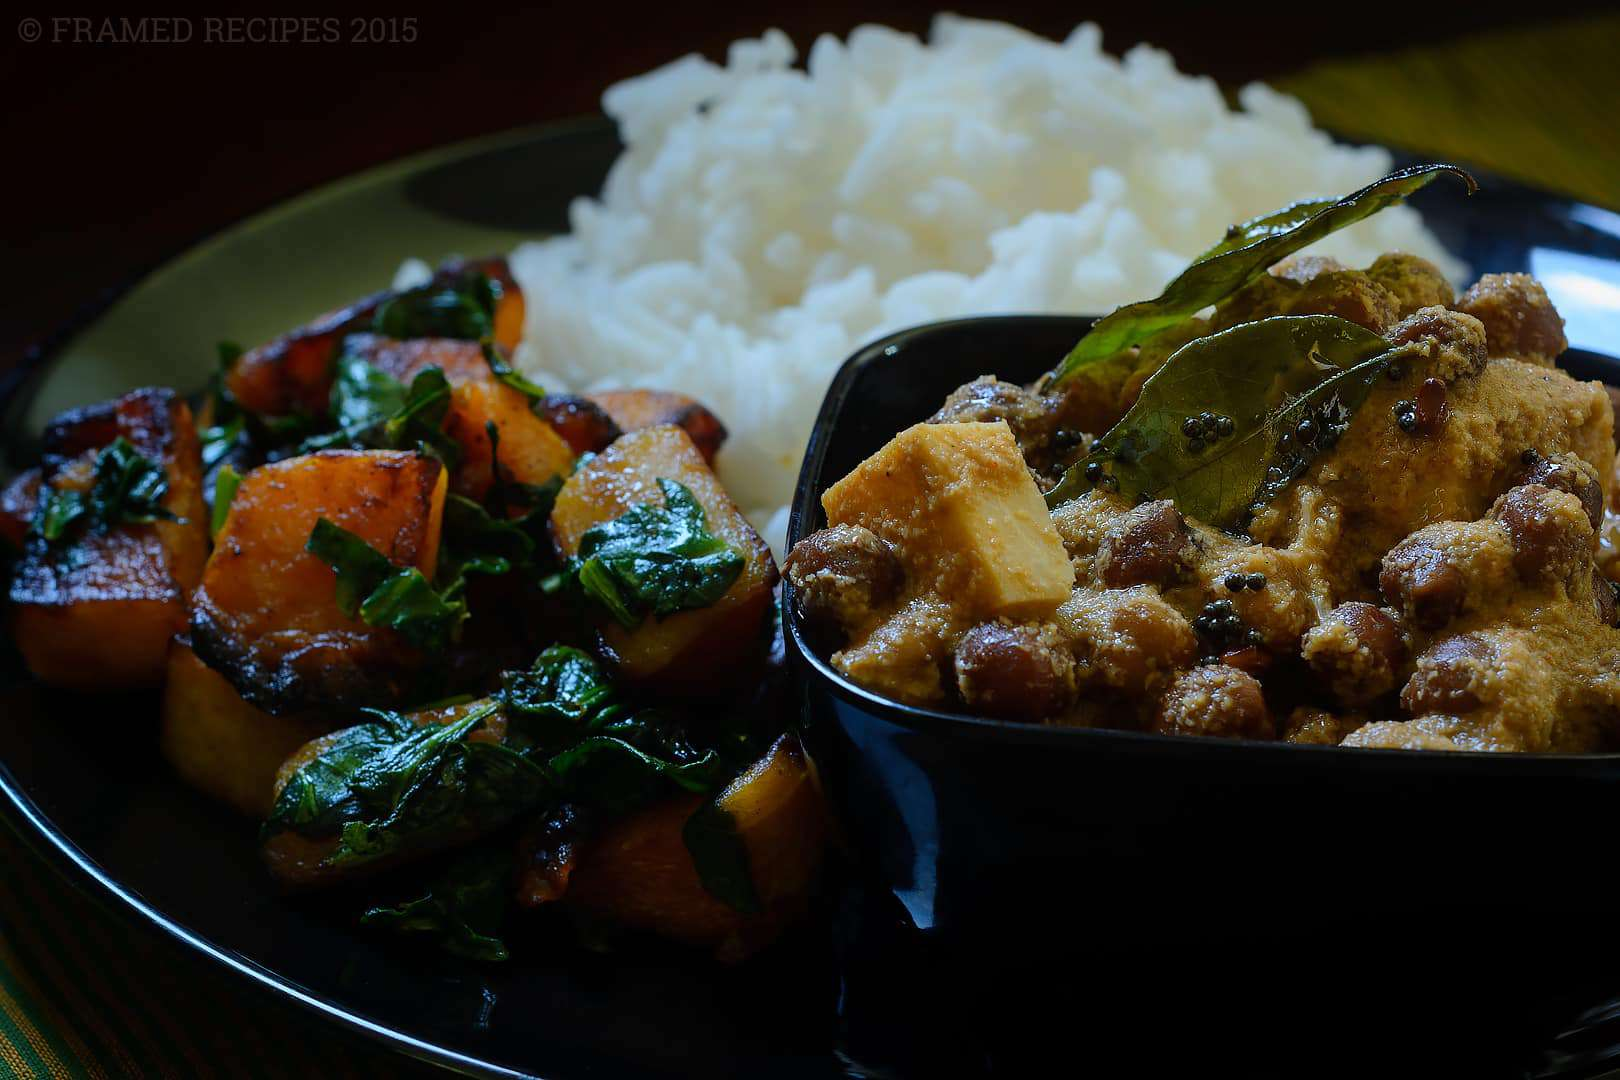 Mangalore style black chana curry served with rice and roasted butternut squash.